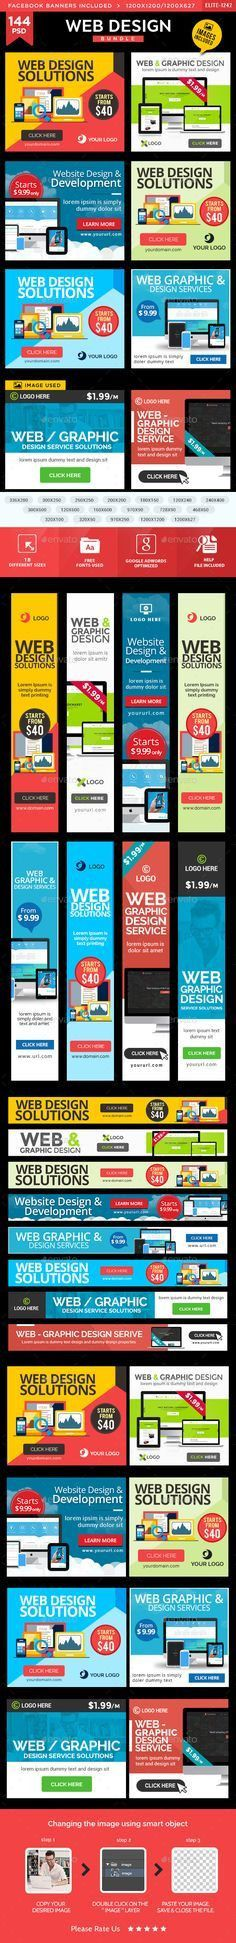 Black Friday Banners | Banners, Black friday and Web banners